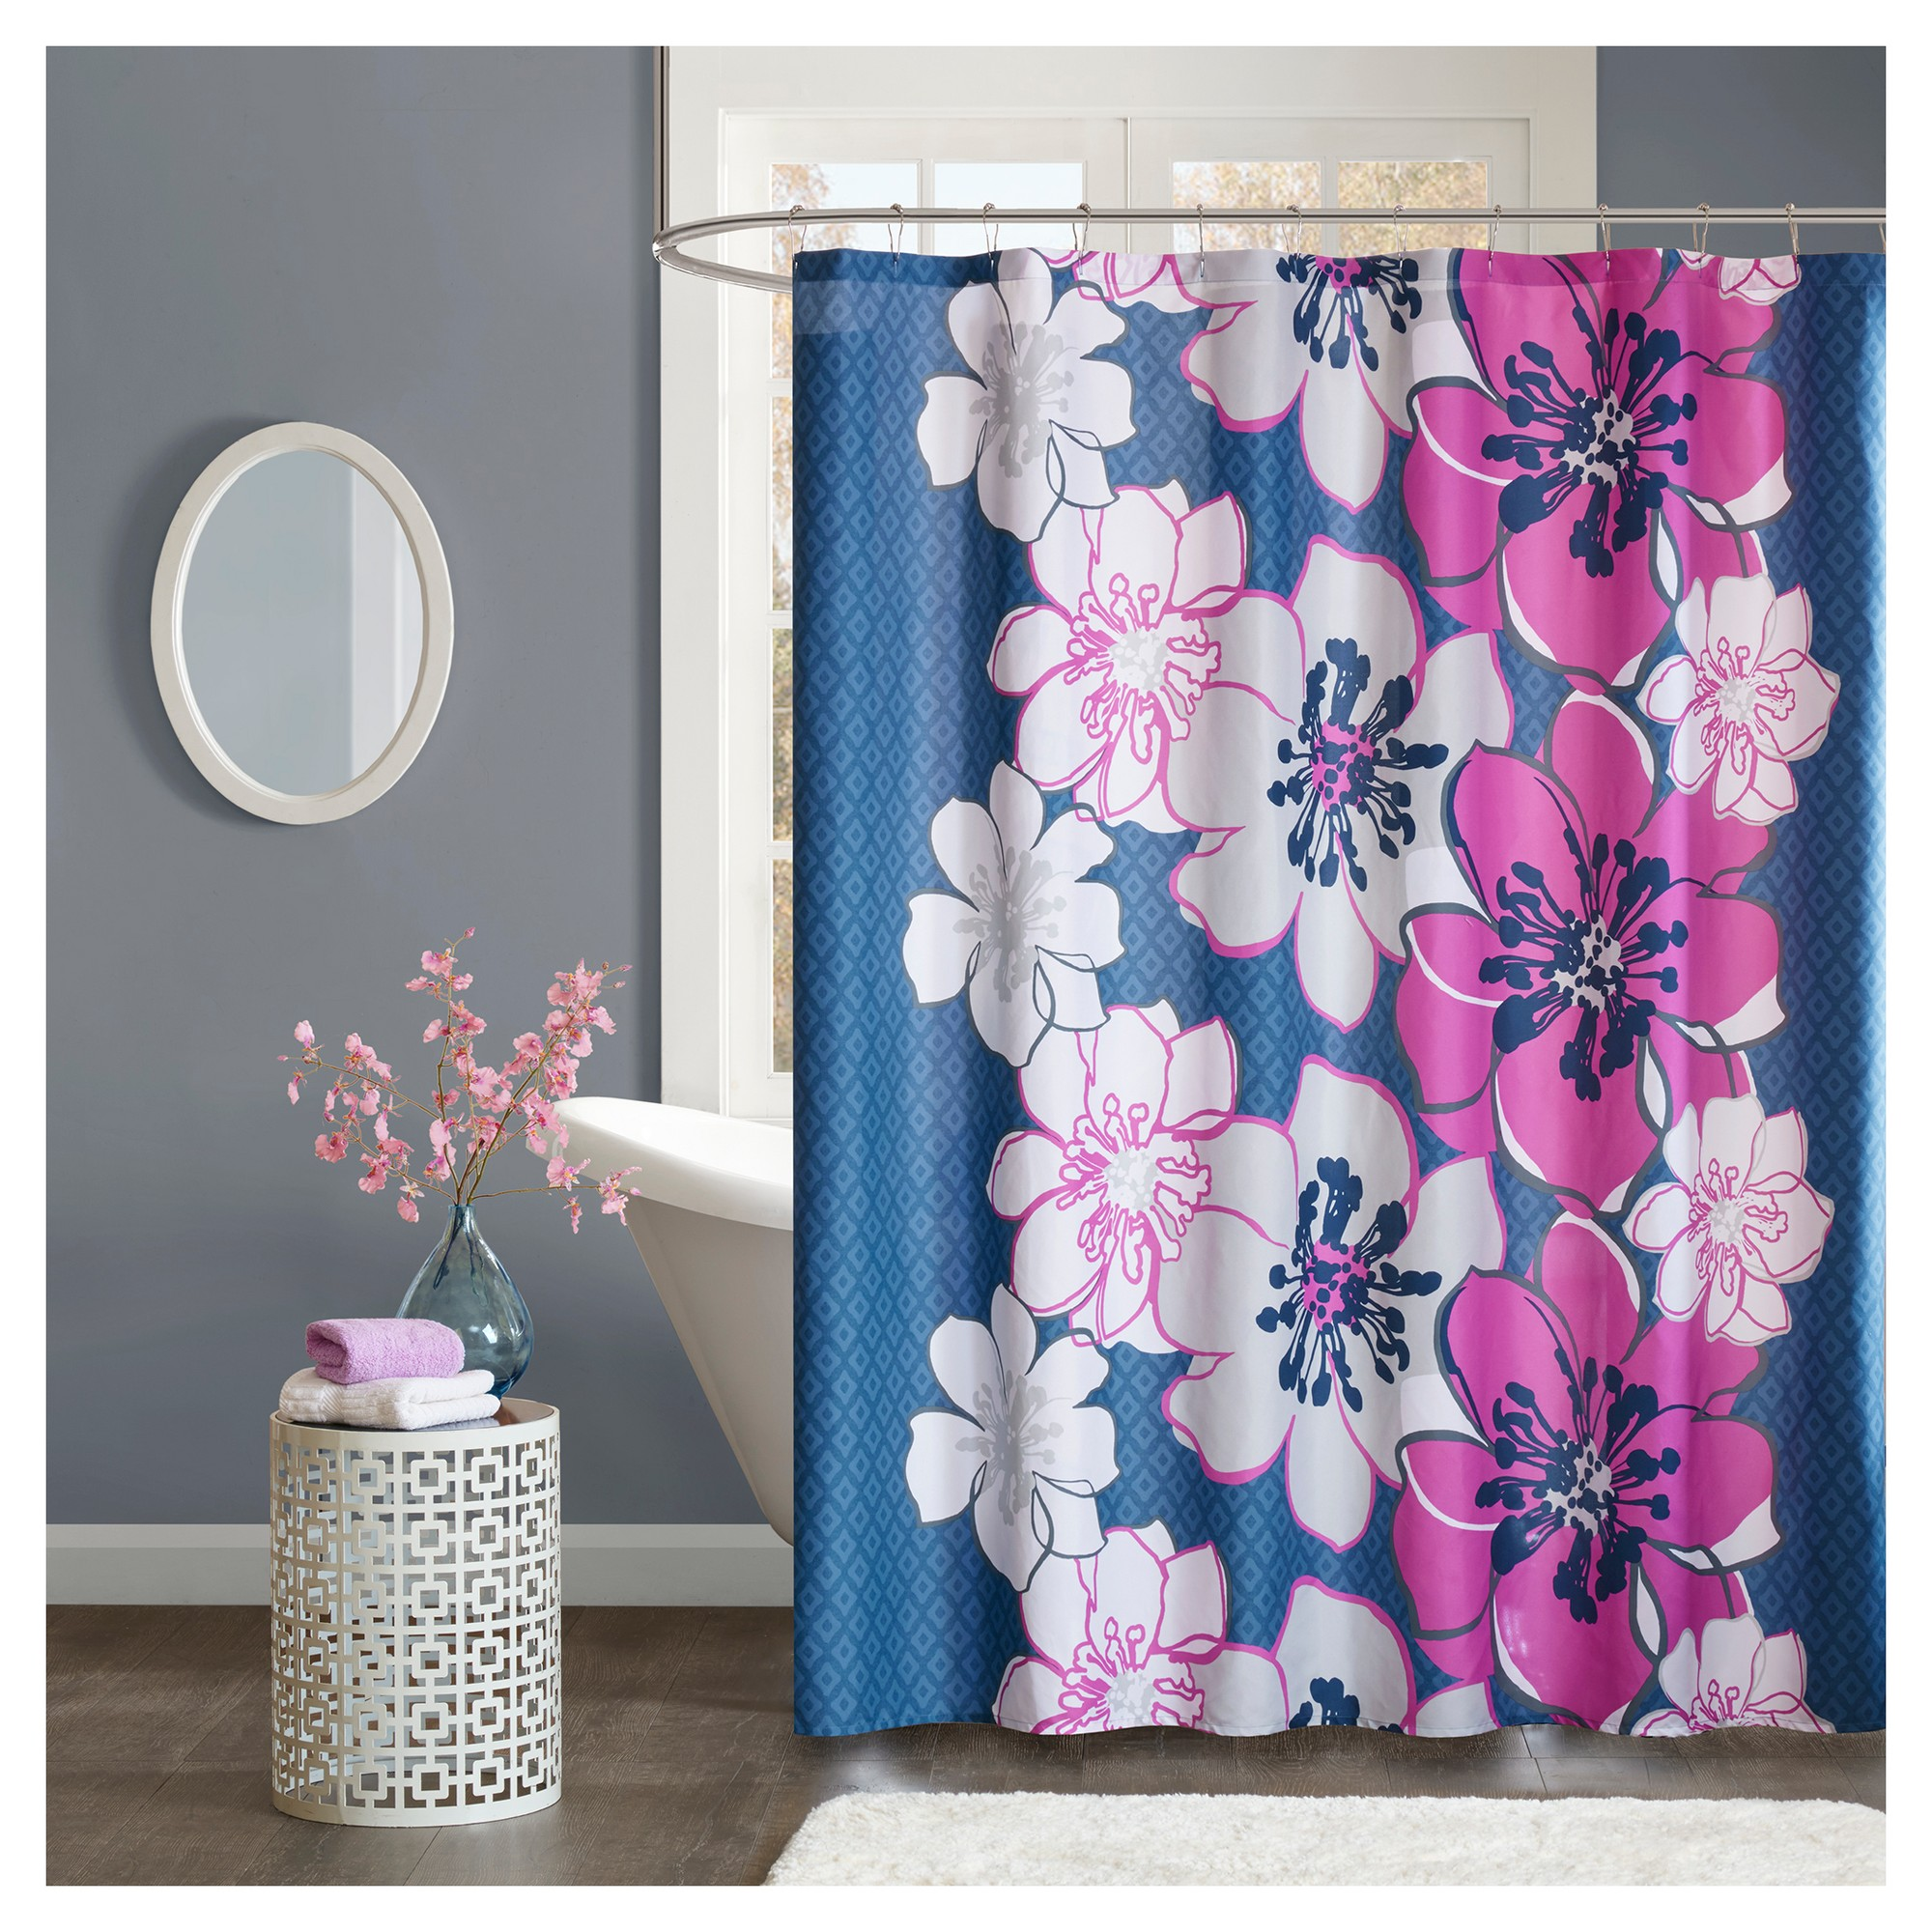 Floral Shower Curtain Flashbulb Fuchsia   Floral shower curtains and ...